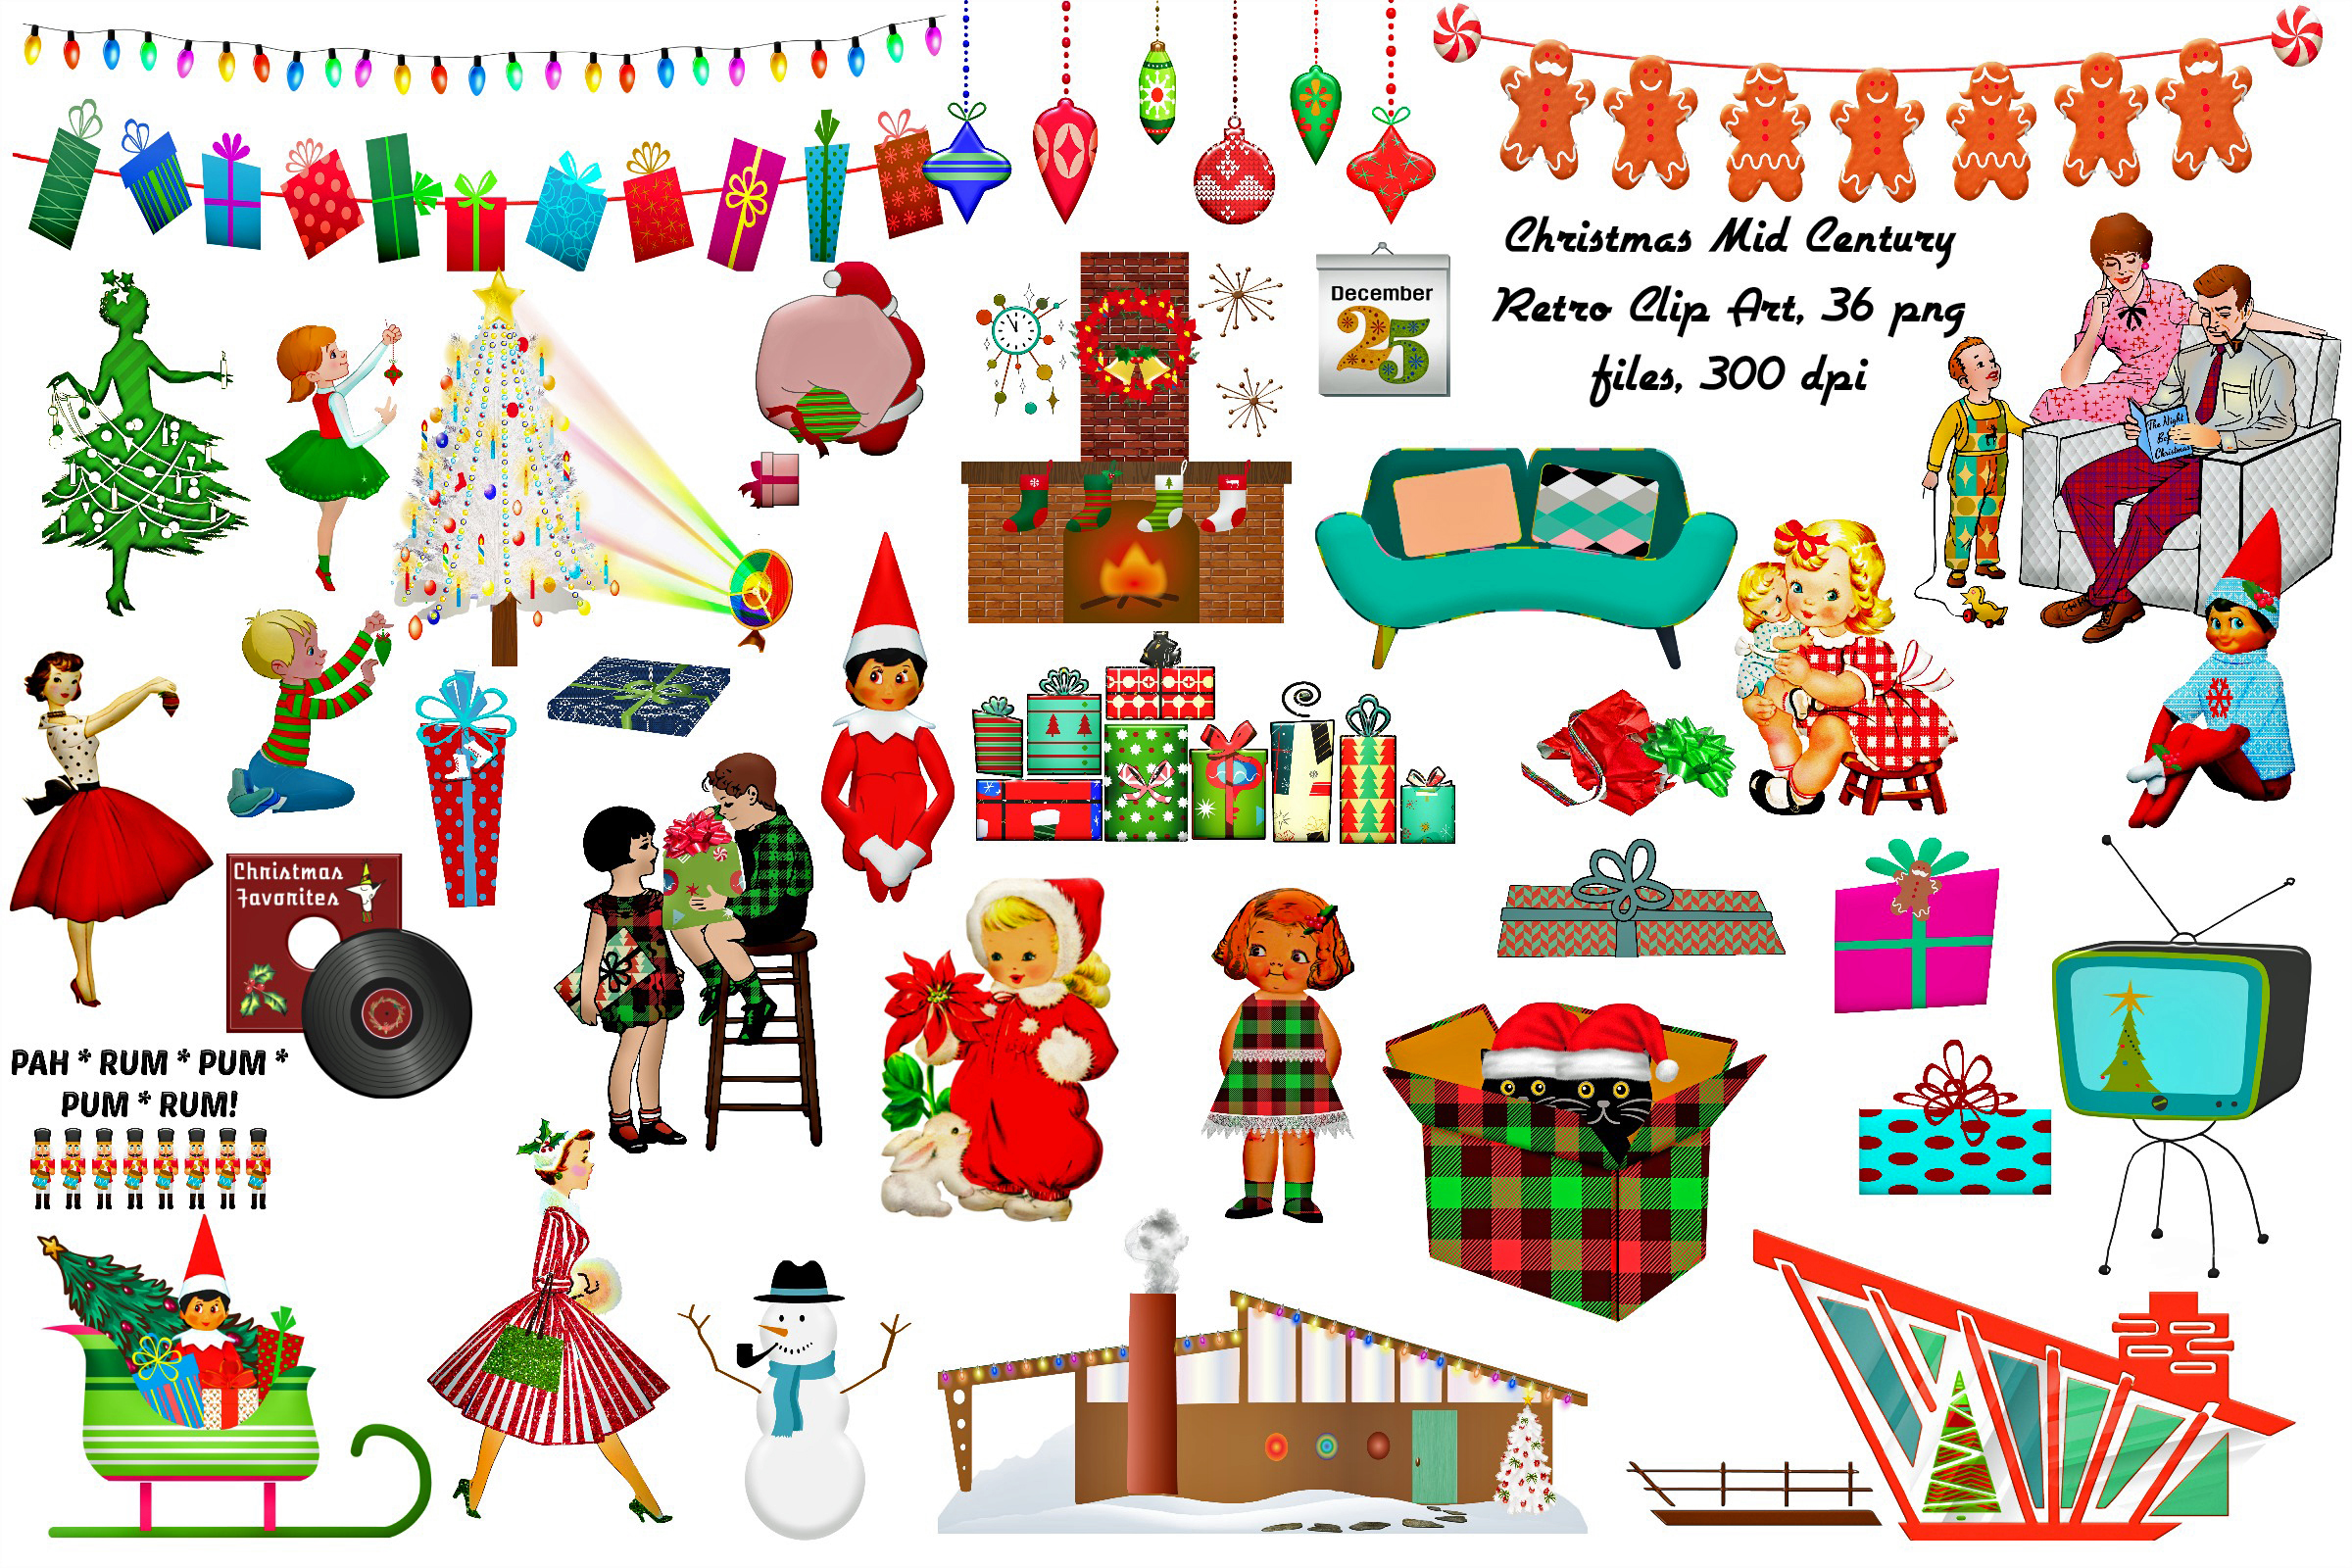 Retro Christmas.Mid Century Retro Christmas Clip Art Atomic Age